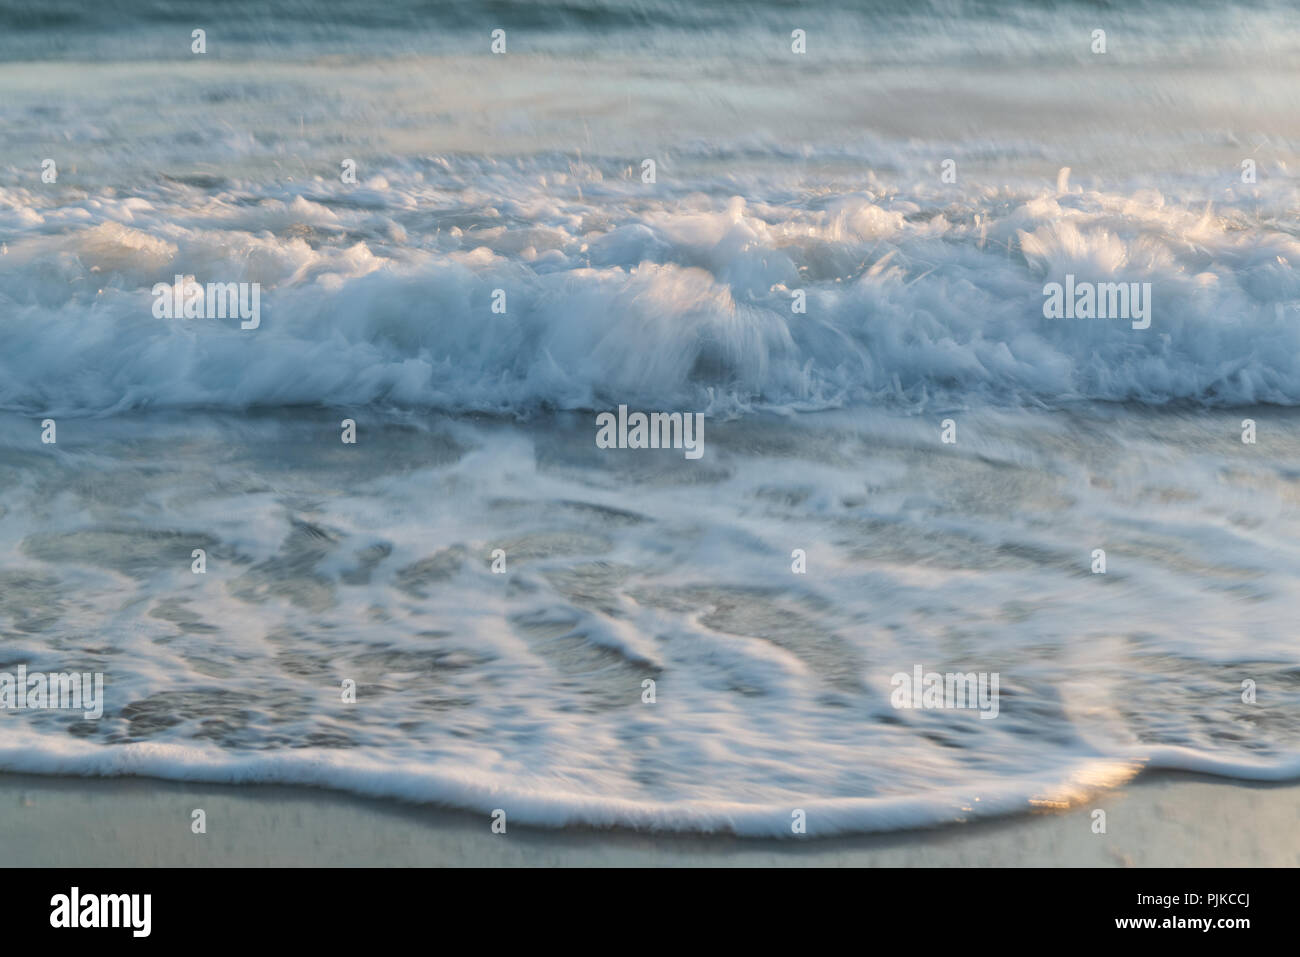 Evening sunlight lighting up waves rolling in on the beach at Trearddur Bay, Anglesea, North Wales - Stock Image